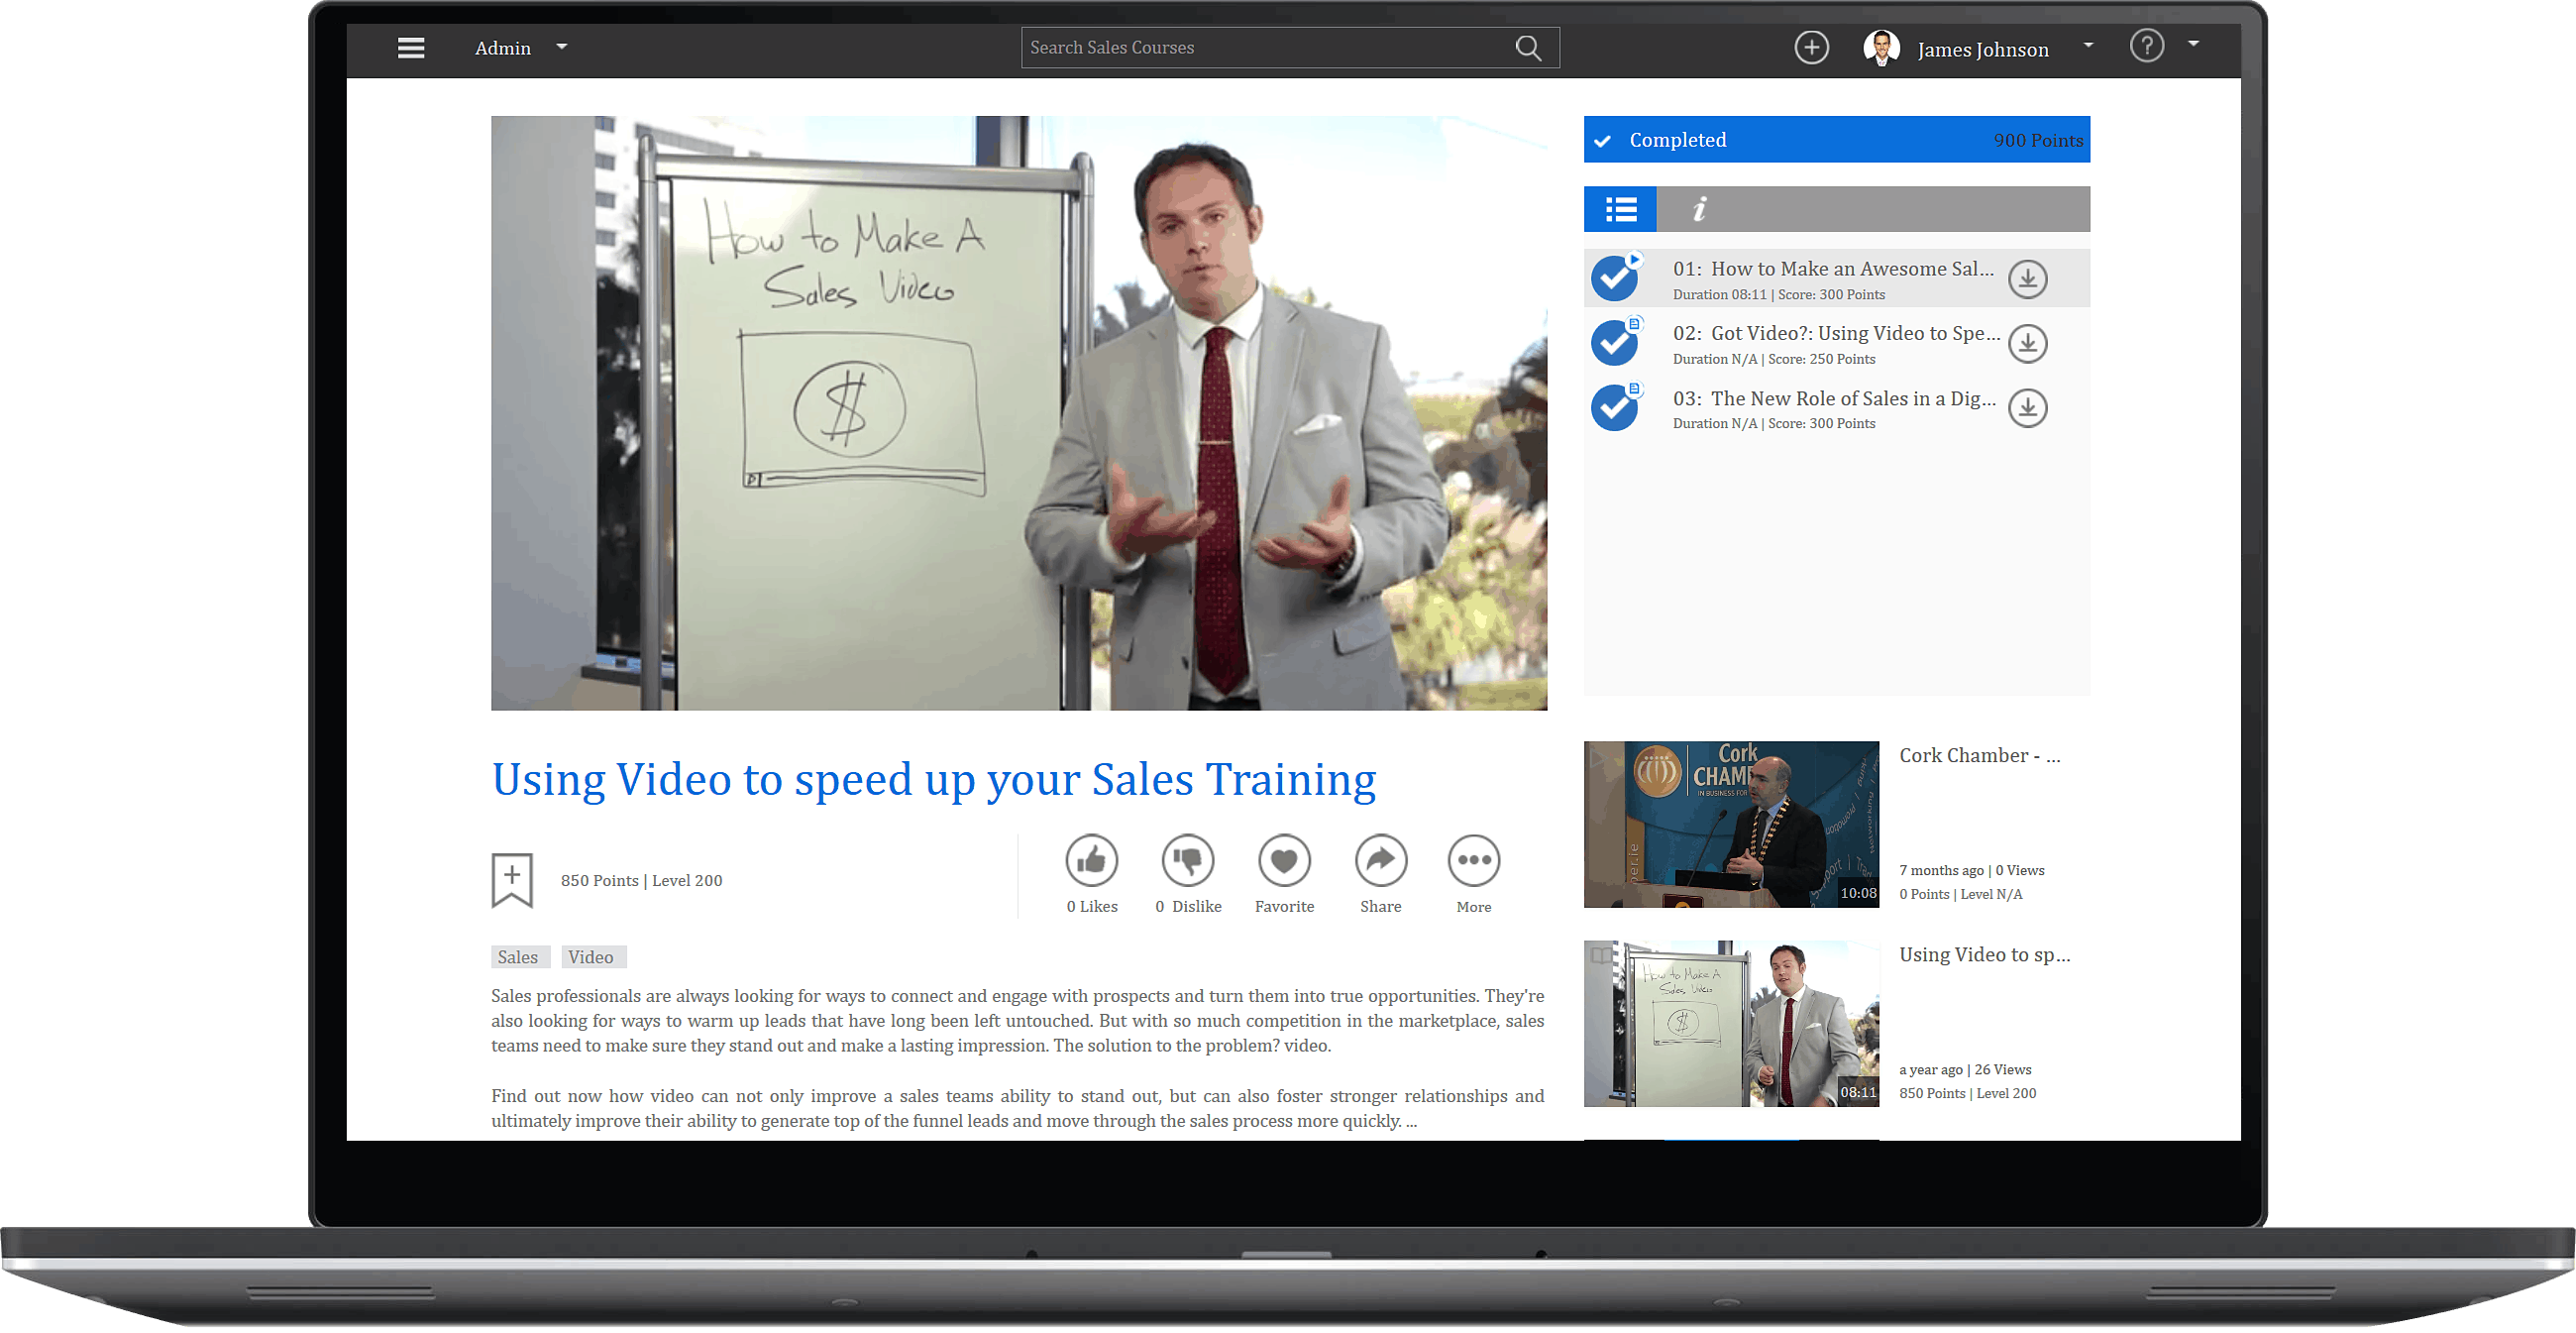 Corporate Video Training & Learning